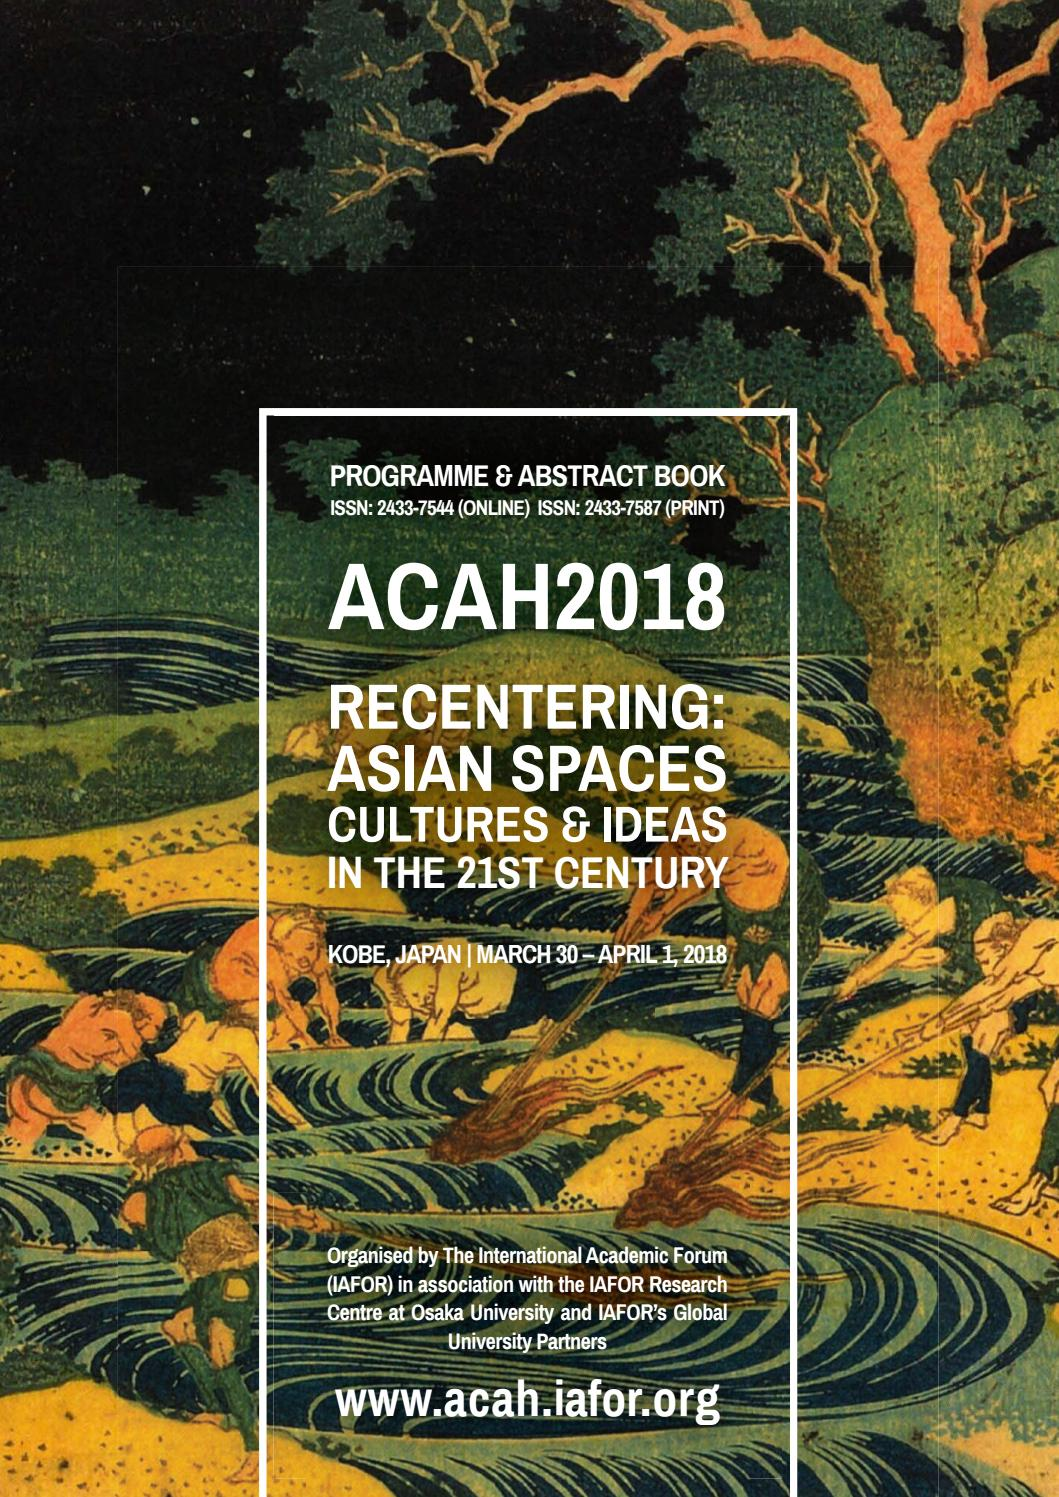 ACAH2018 Programme & Abstract Book by IAFOR - issuu